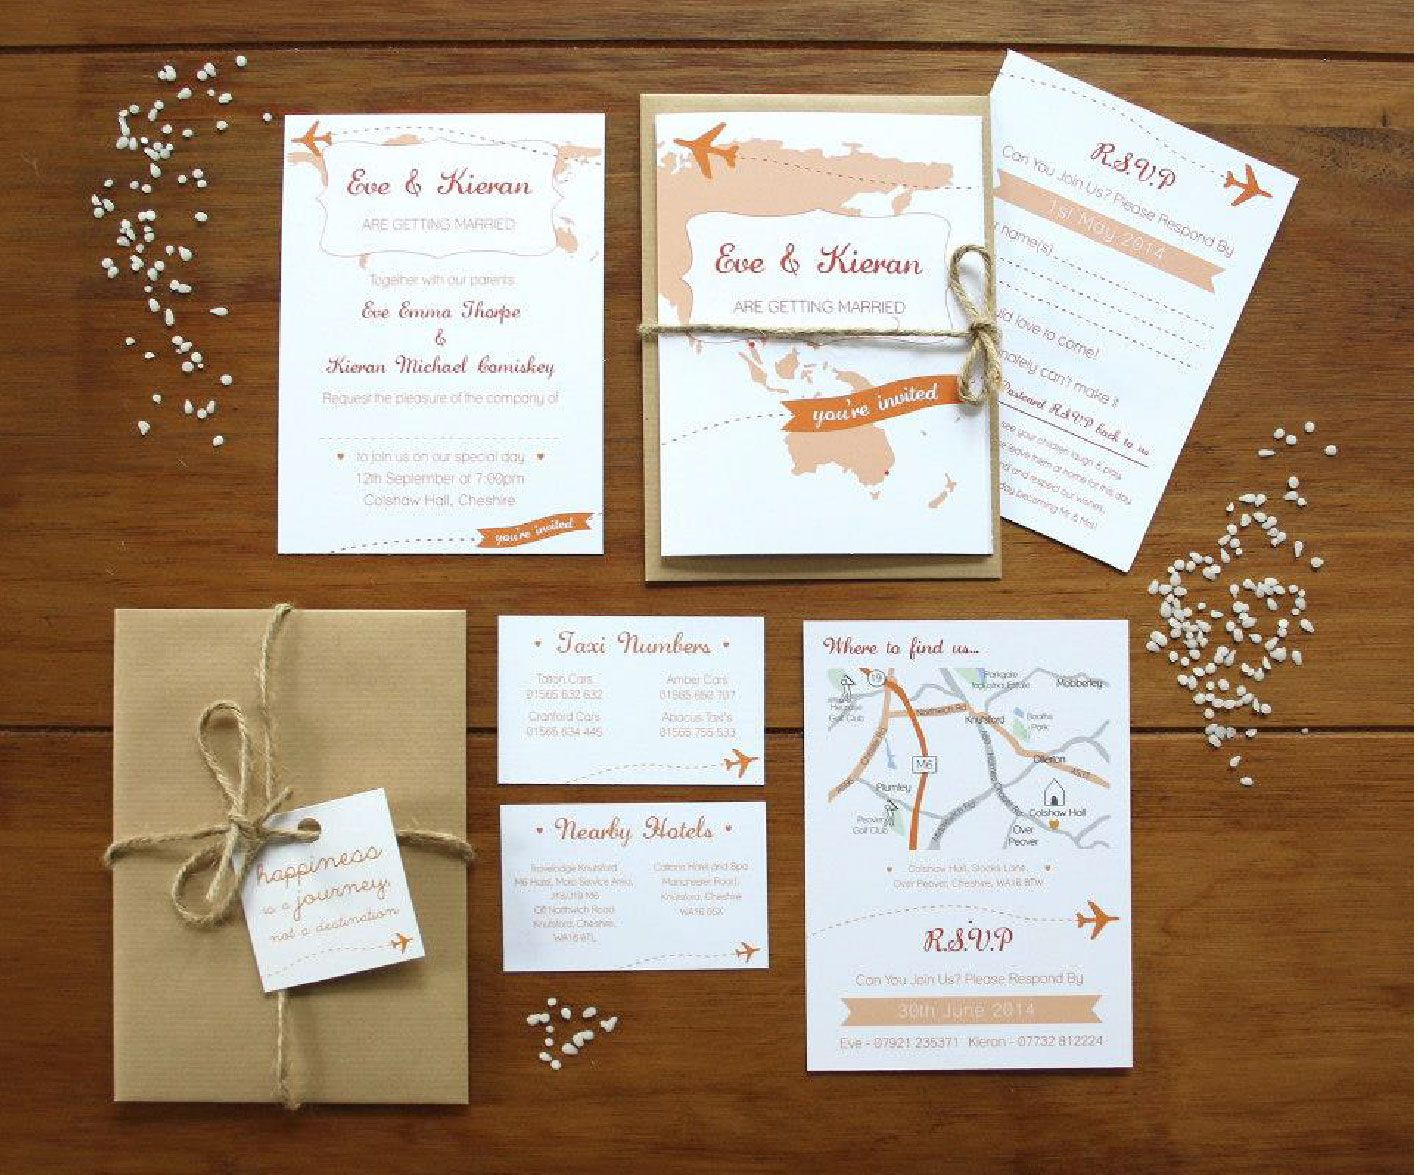 Bespoke wedding stationery in manchester invitations name cards bespoke wedding stationery in manchester invitations name cards thank you cards eve monicamarmolfo Image collections